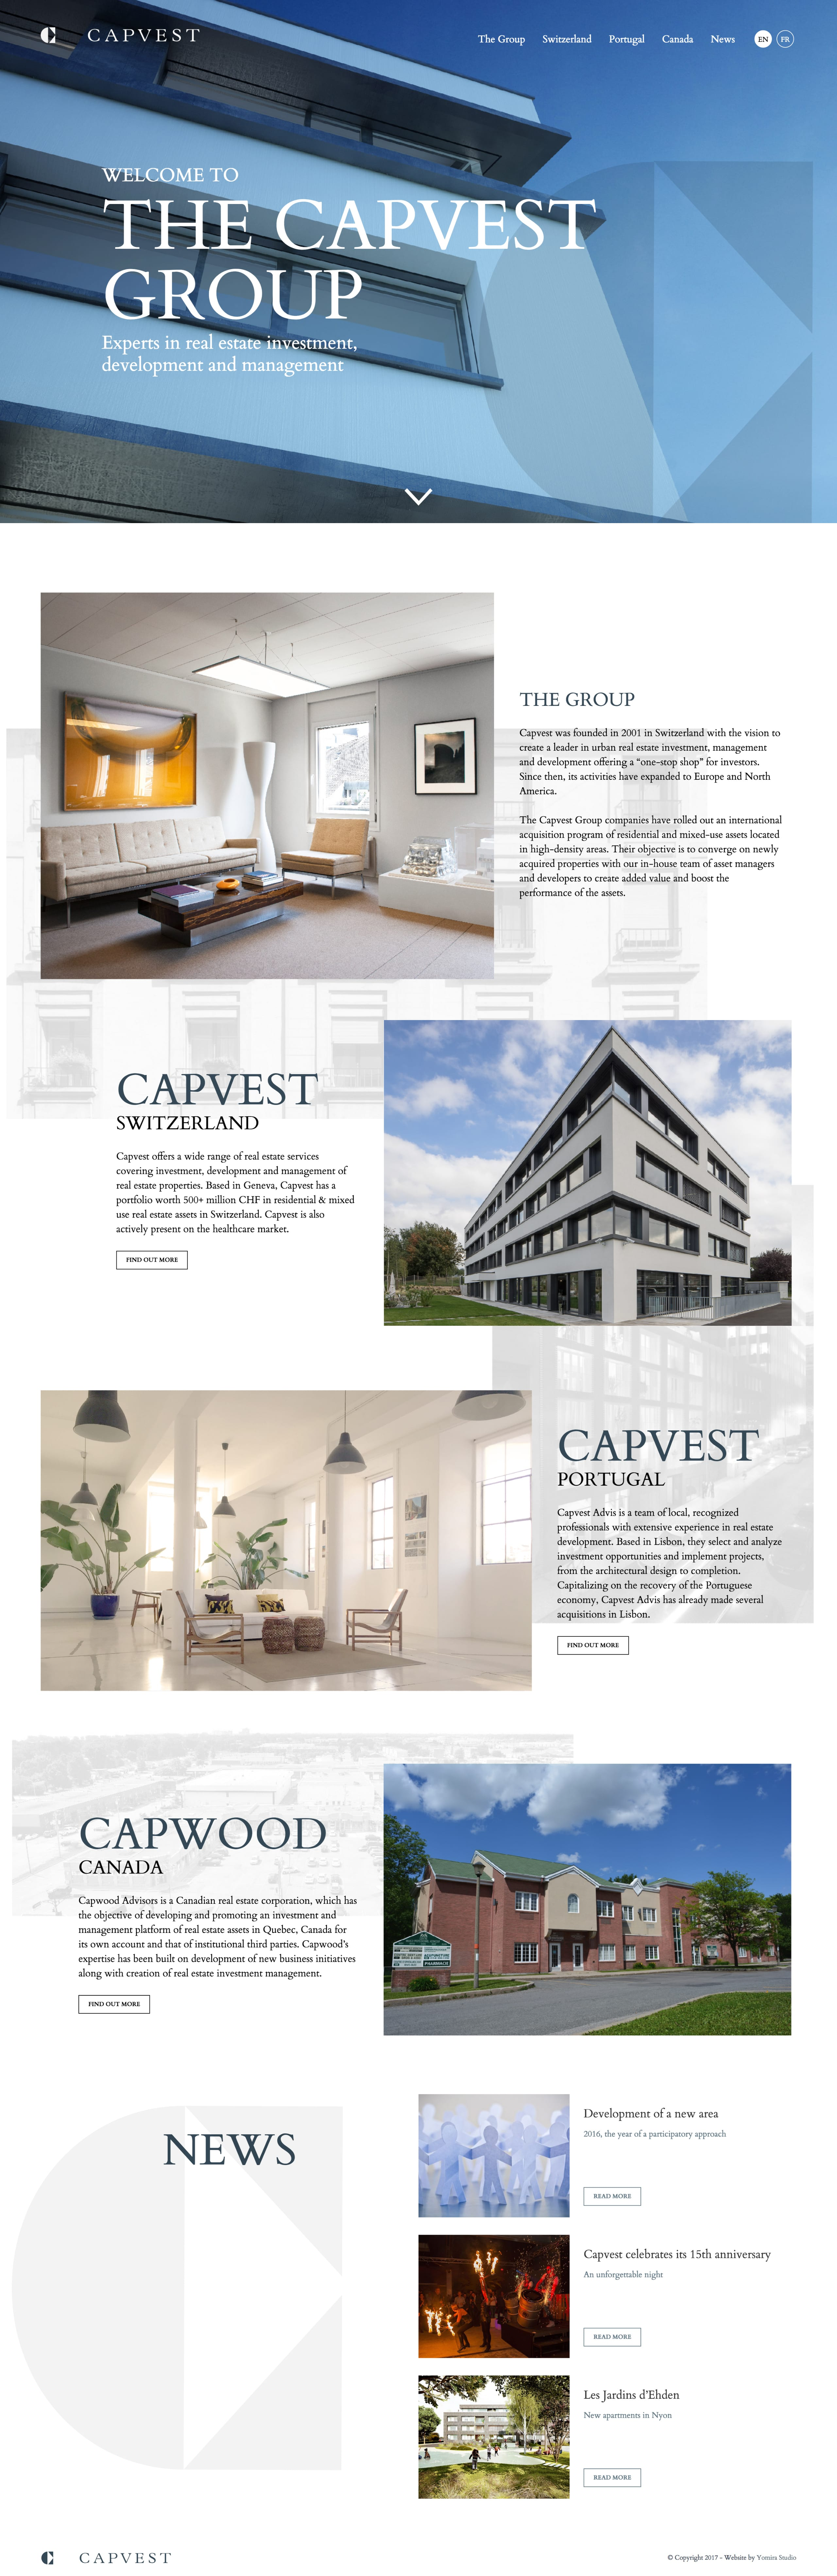 The Capvest Group Website Screenshot